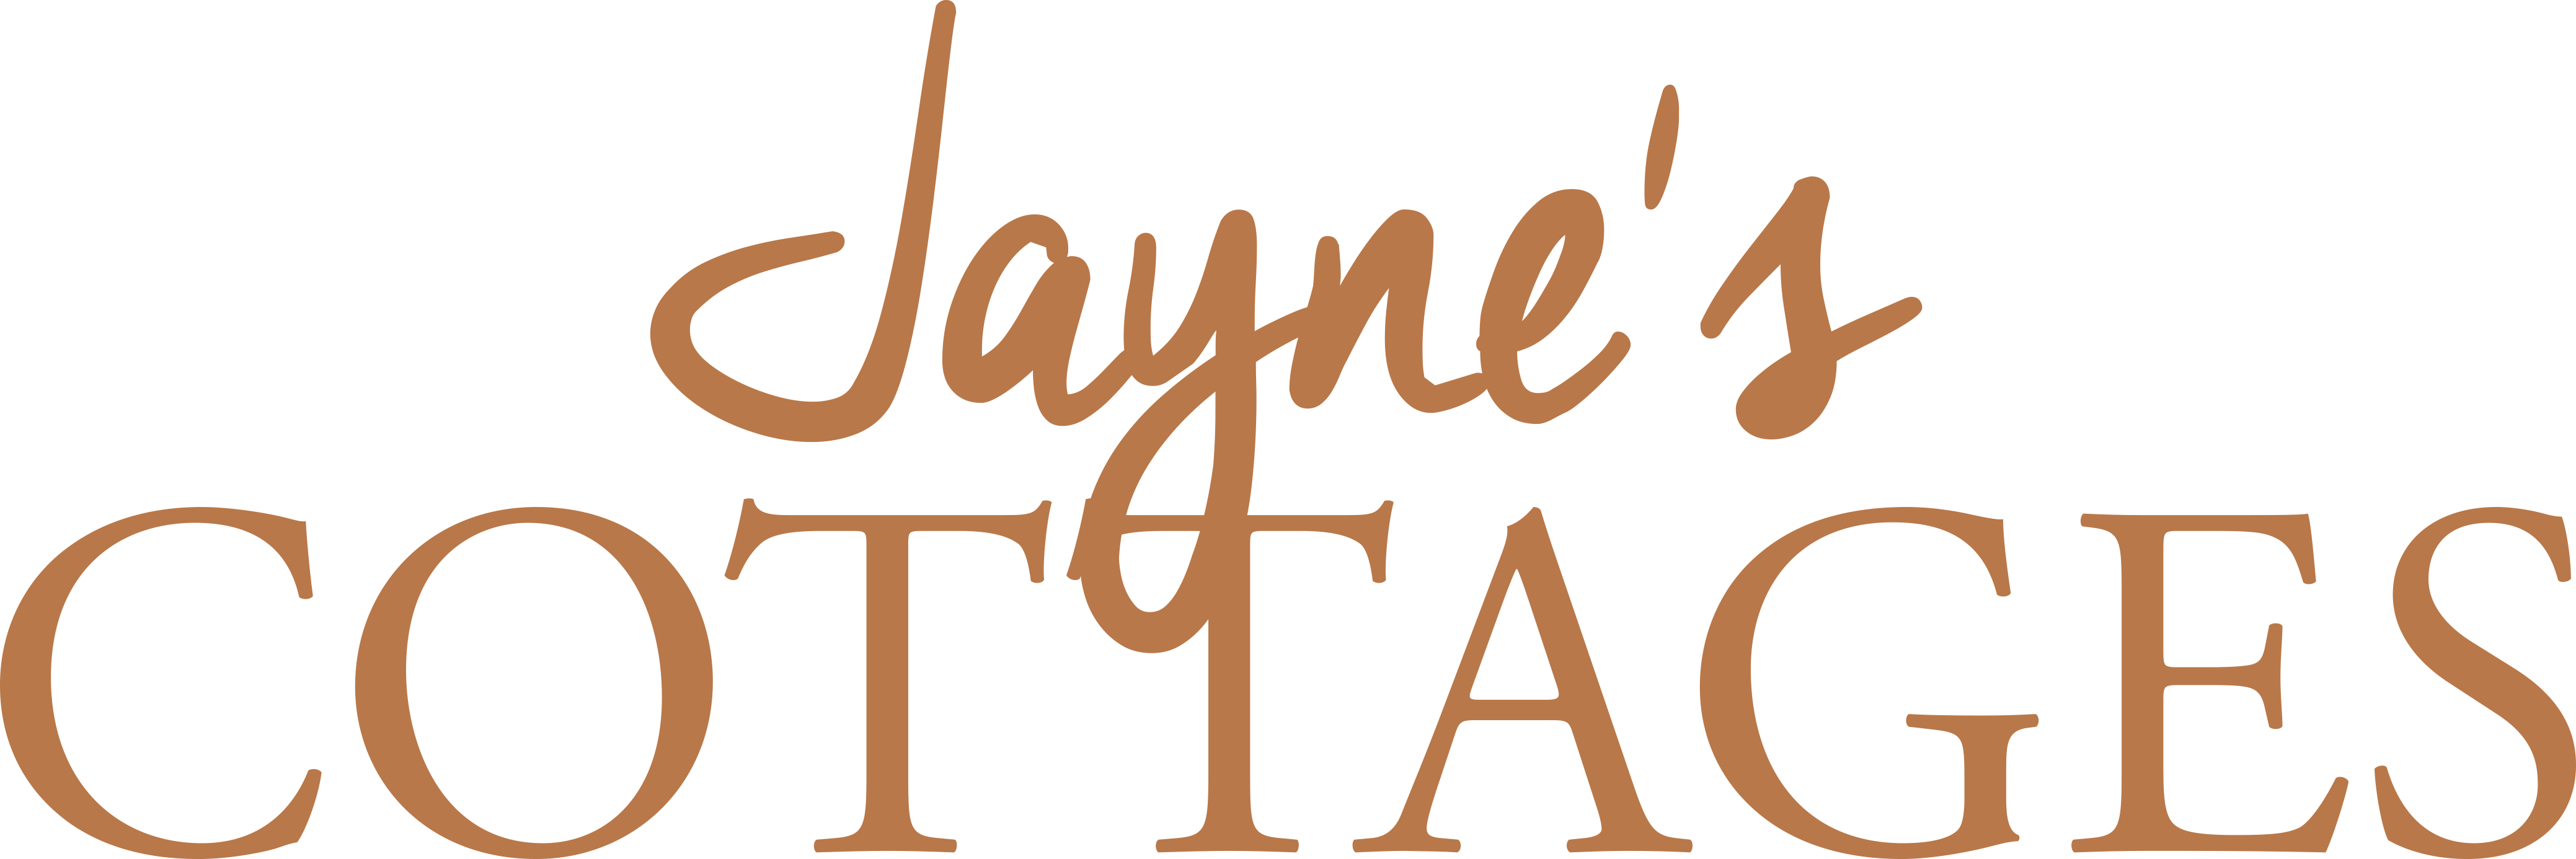 About Jayne's Cottages